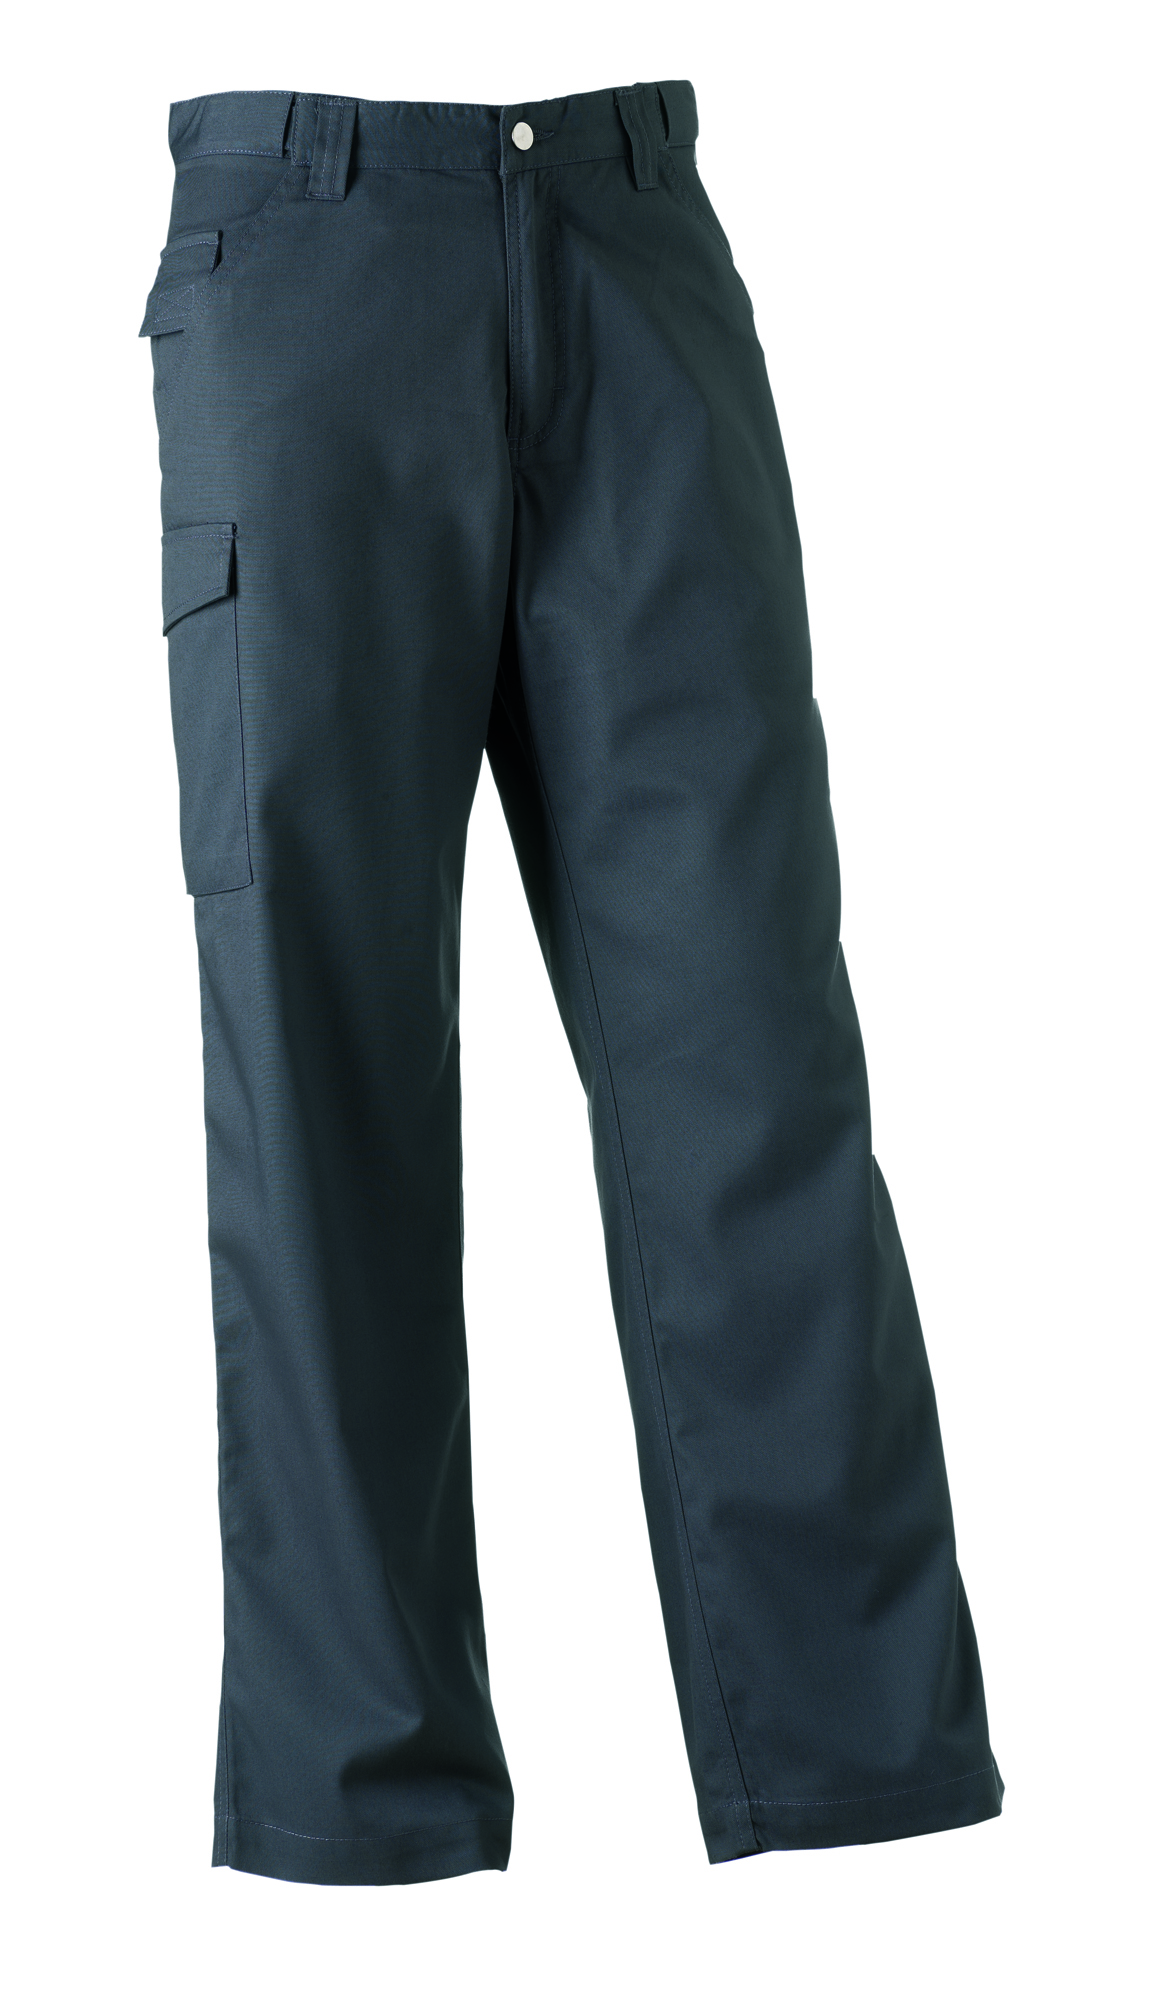 Polycotton Twill Trousers - Convoy Grey - 32-32